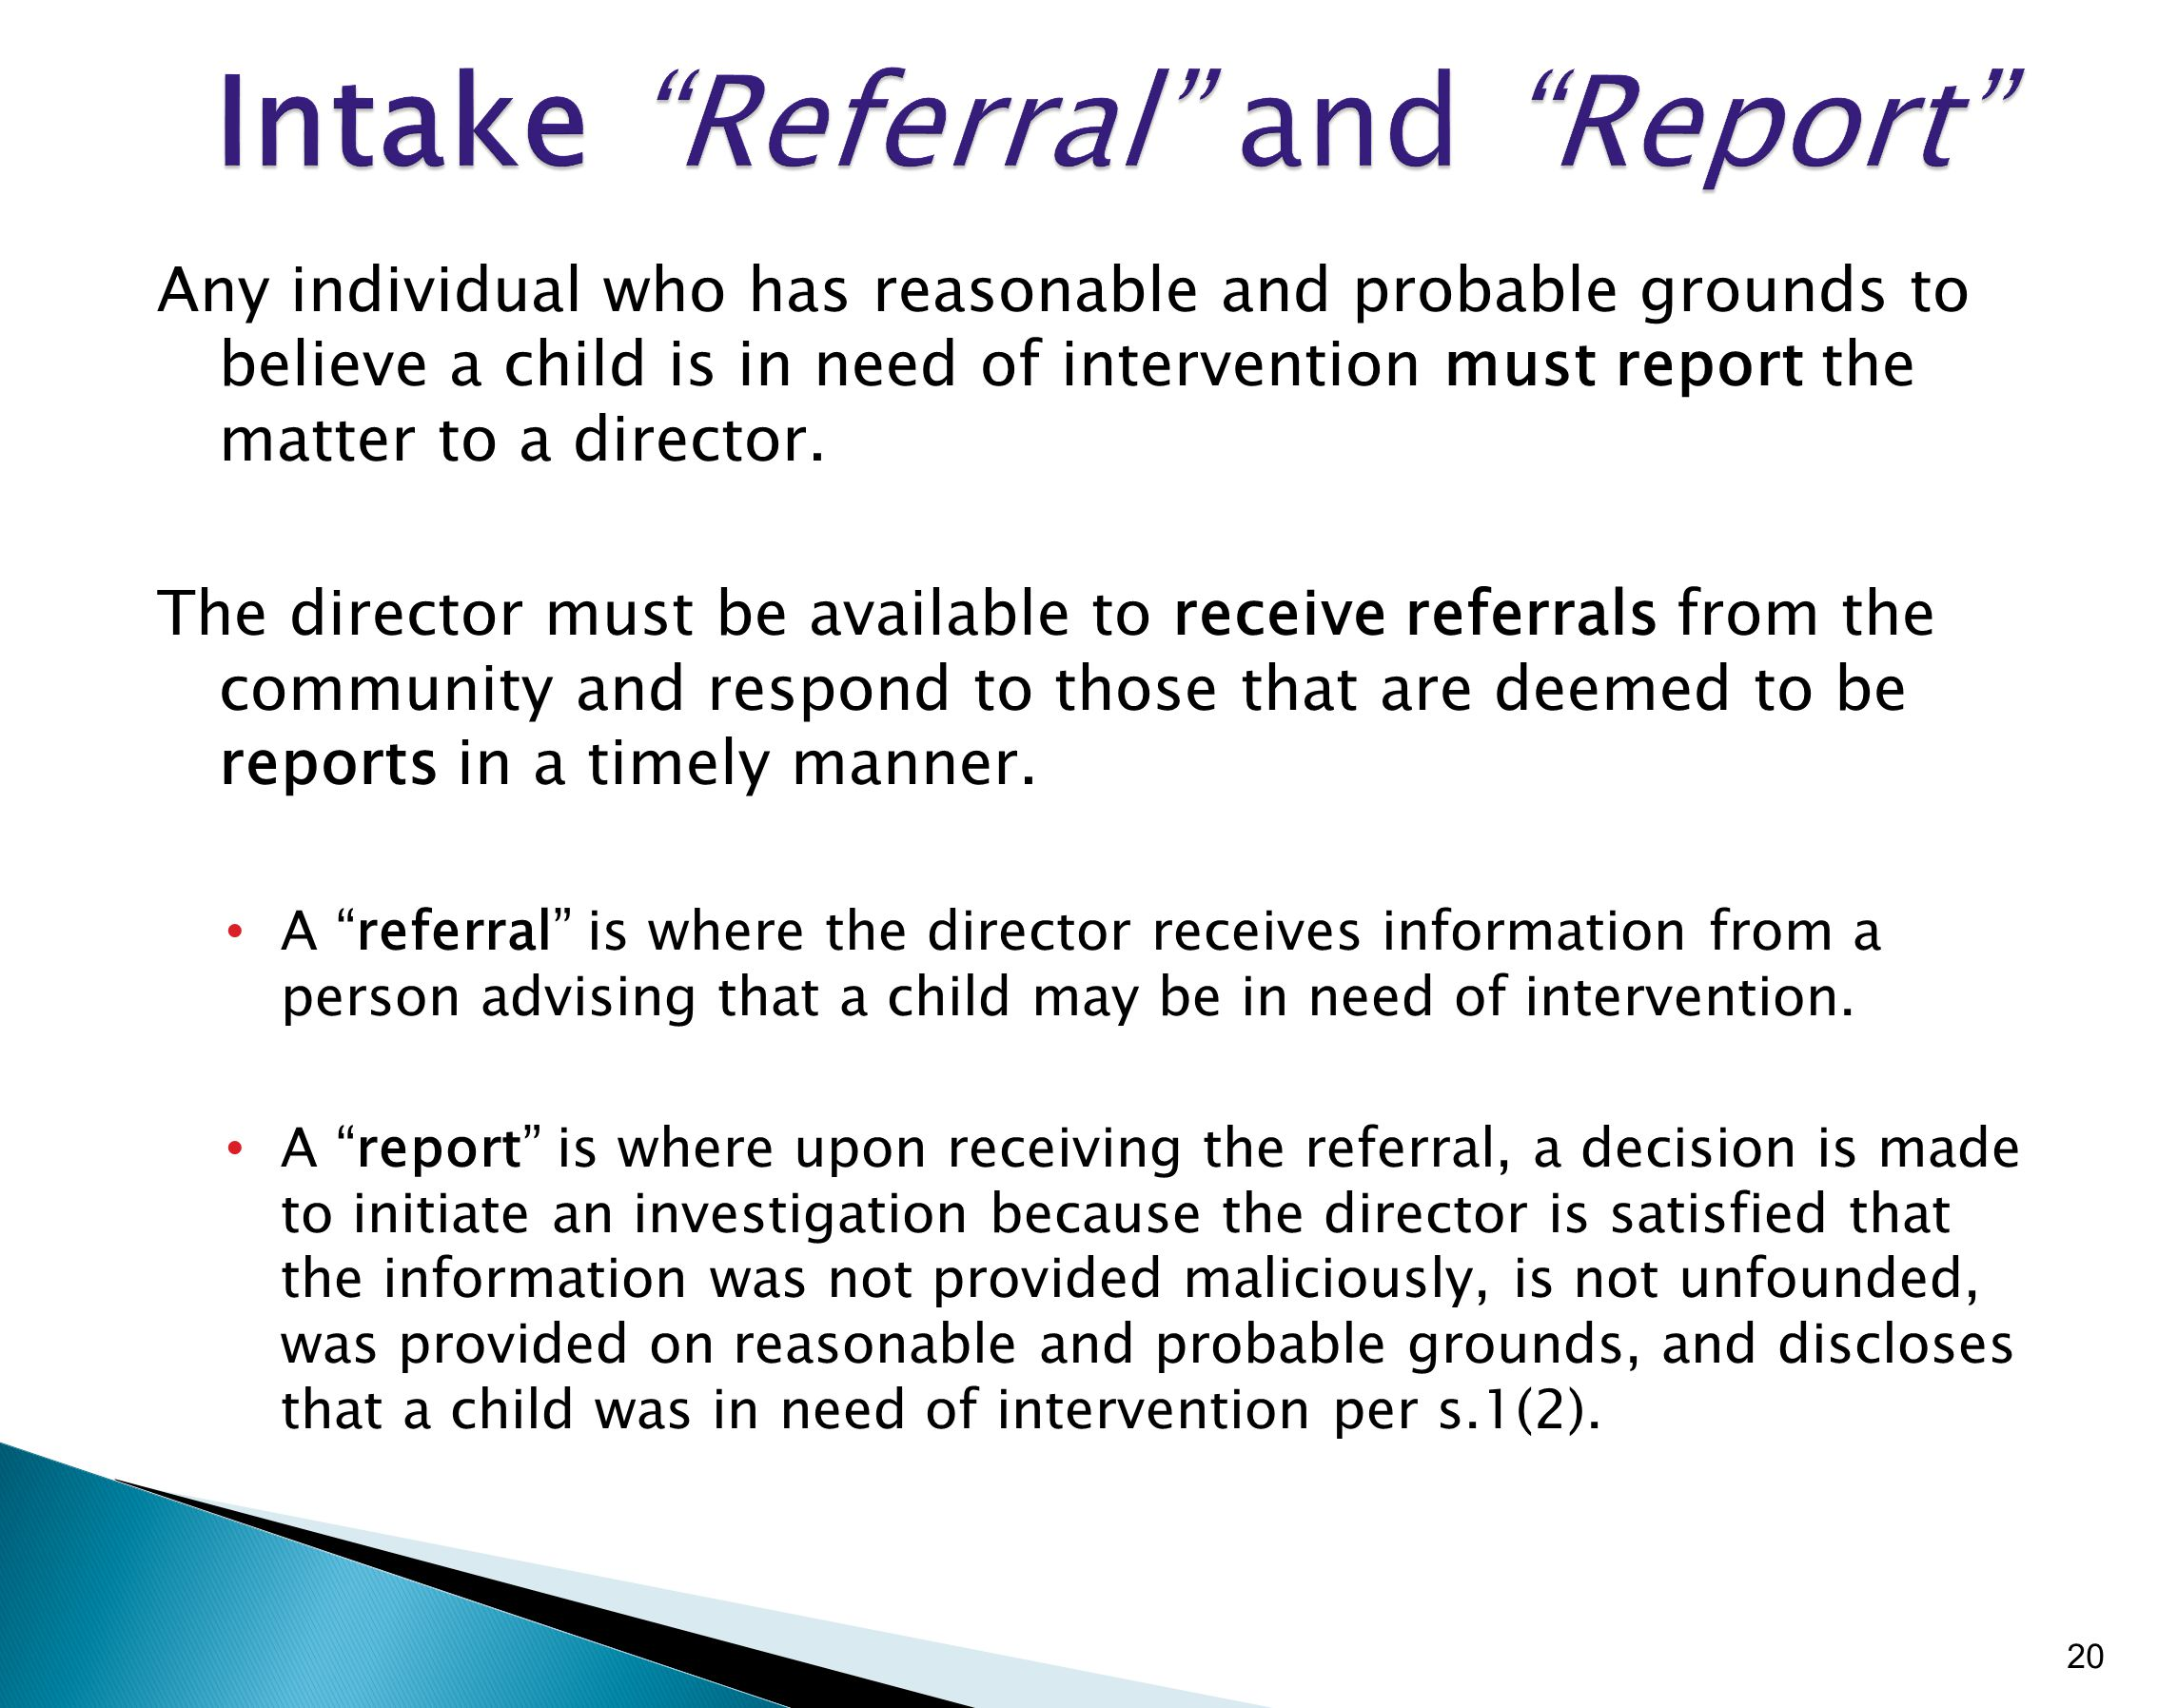 Any individual who has reasonable and probable grounds to believe a child is in need of intervention must report the matter to a director. The directo